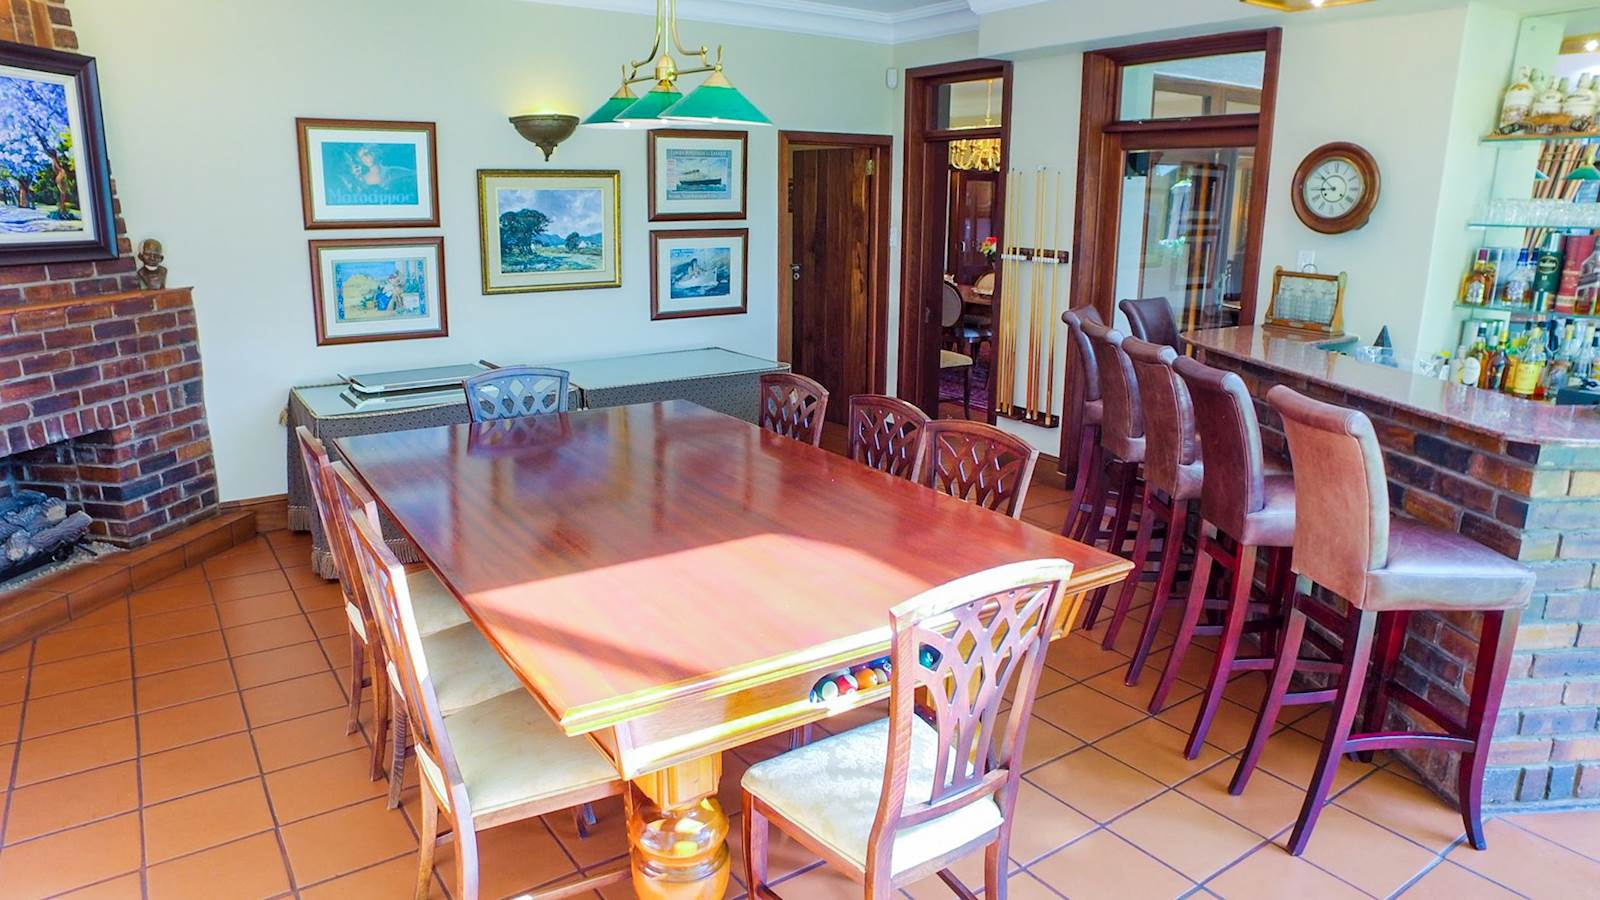 4 Bedroom House for sale in Waterkloof Ridge ENT0005736 : photo#10